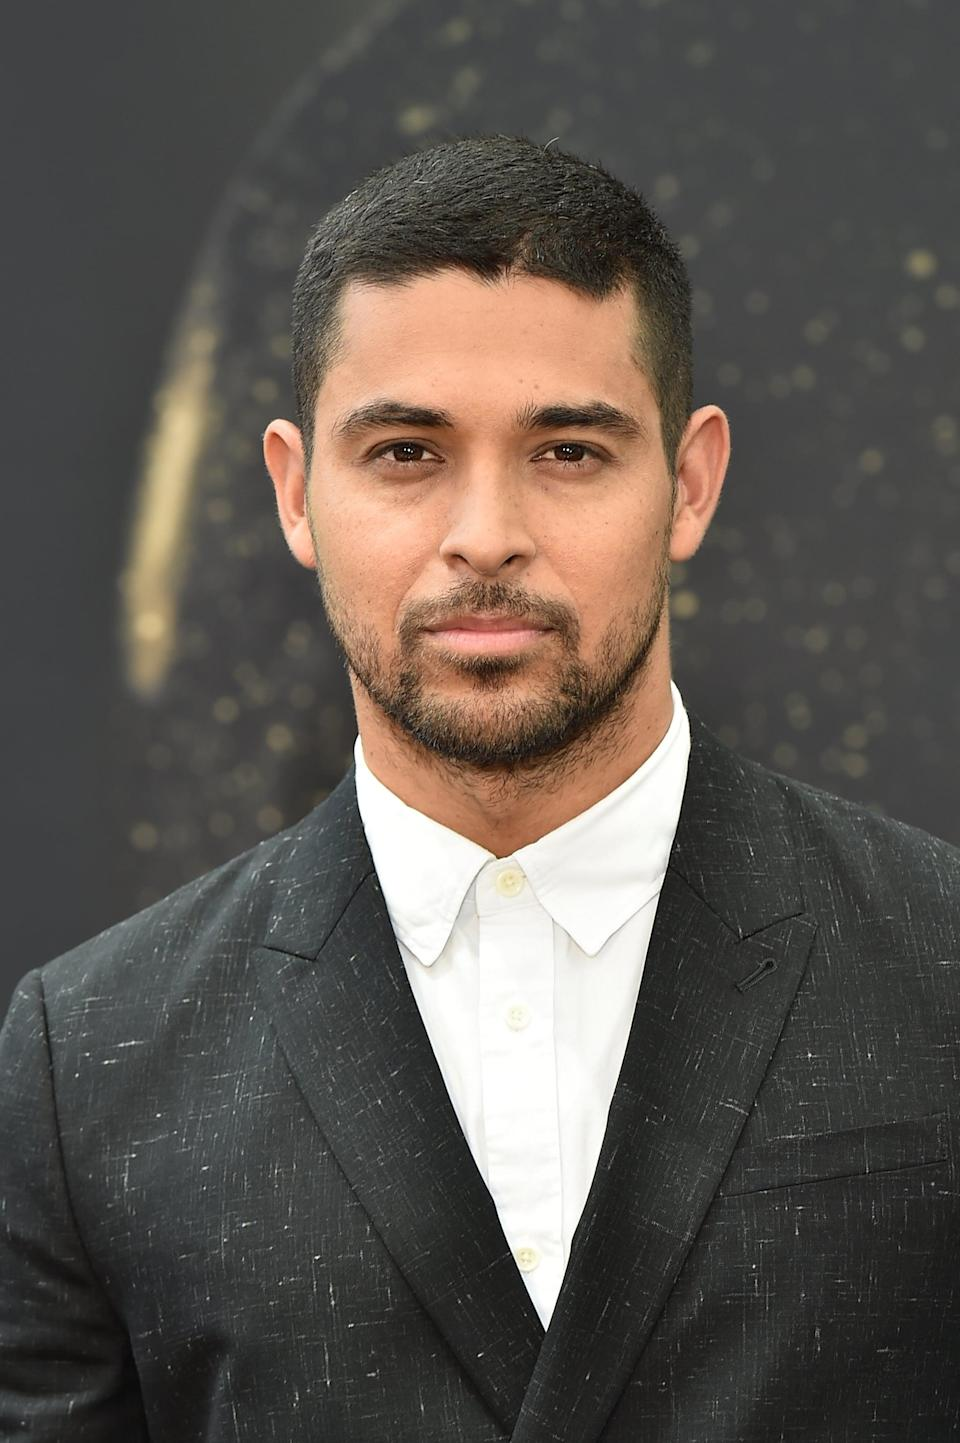 """<p>Minka dated <a class=""""link rapid-noclick-resp"""" href=""""https://www.popsugar.com/Wilmer-Valderrama"""" rel=""""nofollow noopener"""" target=""""_blank"""" data-ylk=""""slk:Wilmer Valderrama"""">Wilmer Valderrama</a> in 2012, but the relationship didn't last long. Cut to four years later, and the two set off rumors of a reconciliation after being <a href=""""https://www.popsugar.com/celebrity/Minka-Kelly-Wilmer-Valderrama-Mexico-September-2016-42330063"""" class=""""link rapid-noclick-resp"""" rel=""""nofollow noopener"""" target=""""_blank"""" data-ylk=""""slk:spotted on vacation in Mexico"""">spotted on vacation in Mexico</a> together in September 2016.</p>"""